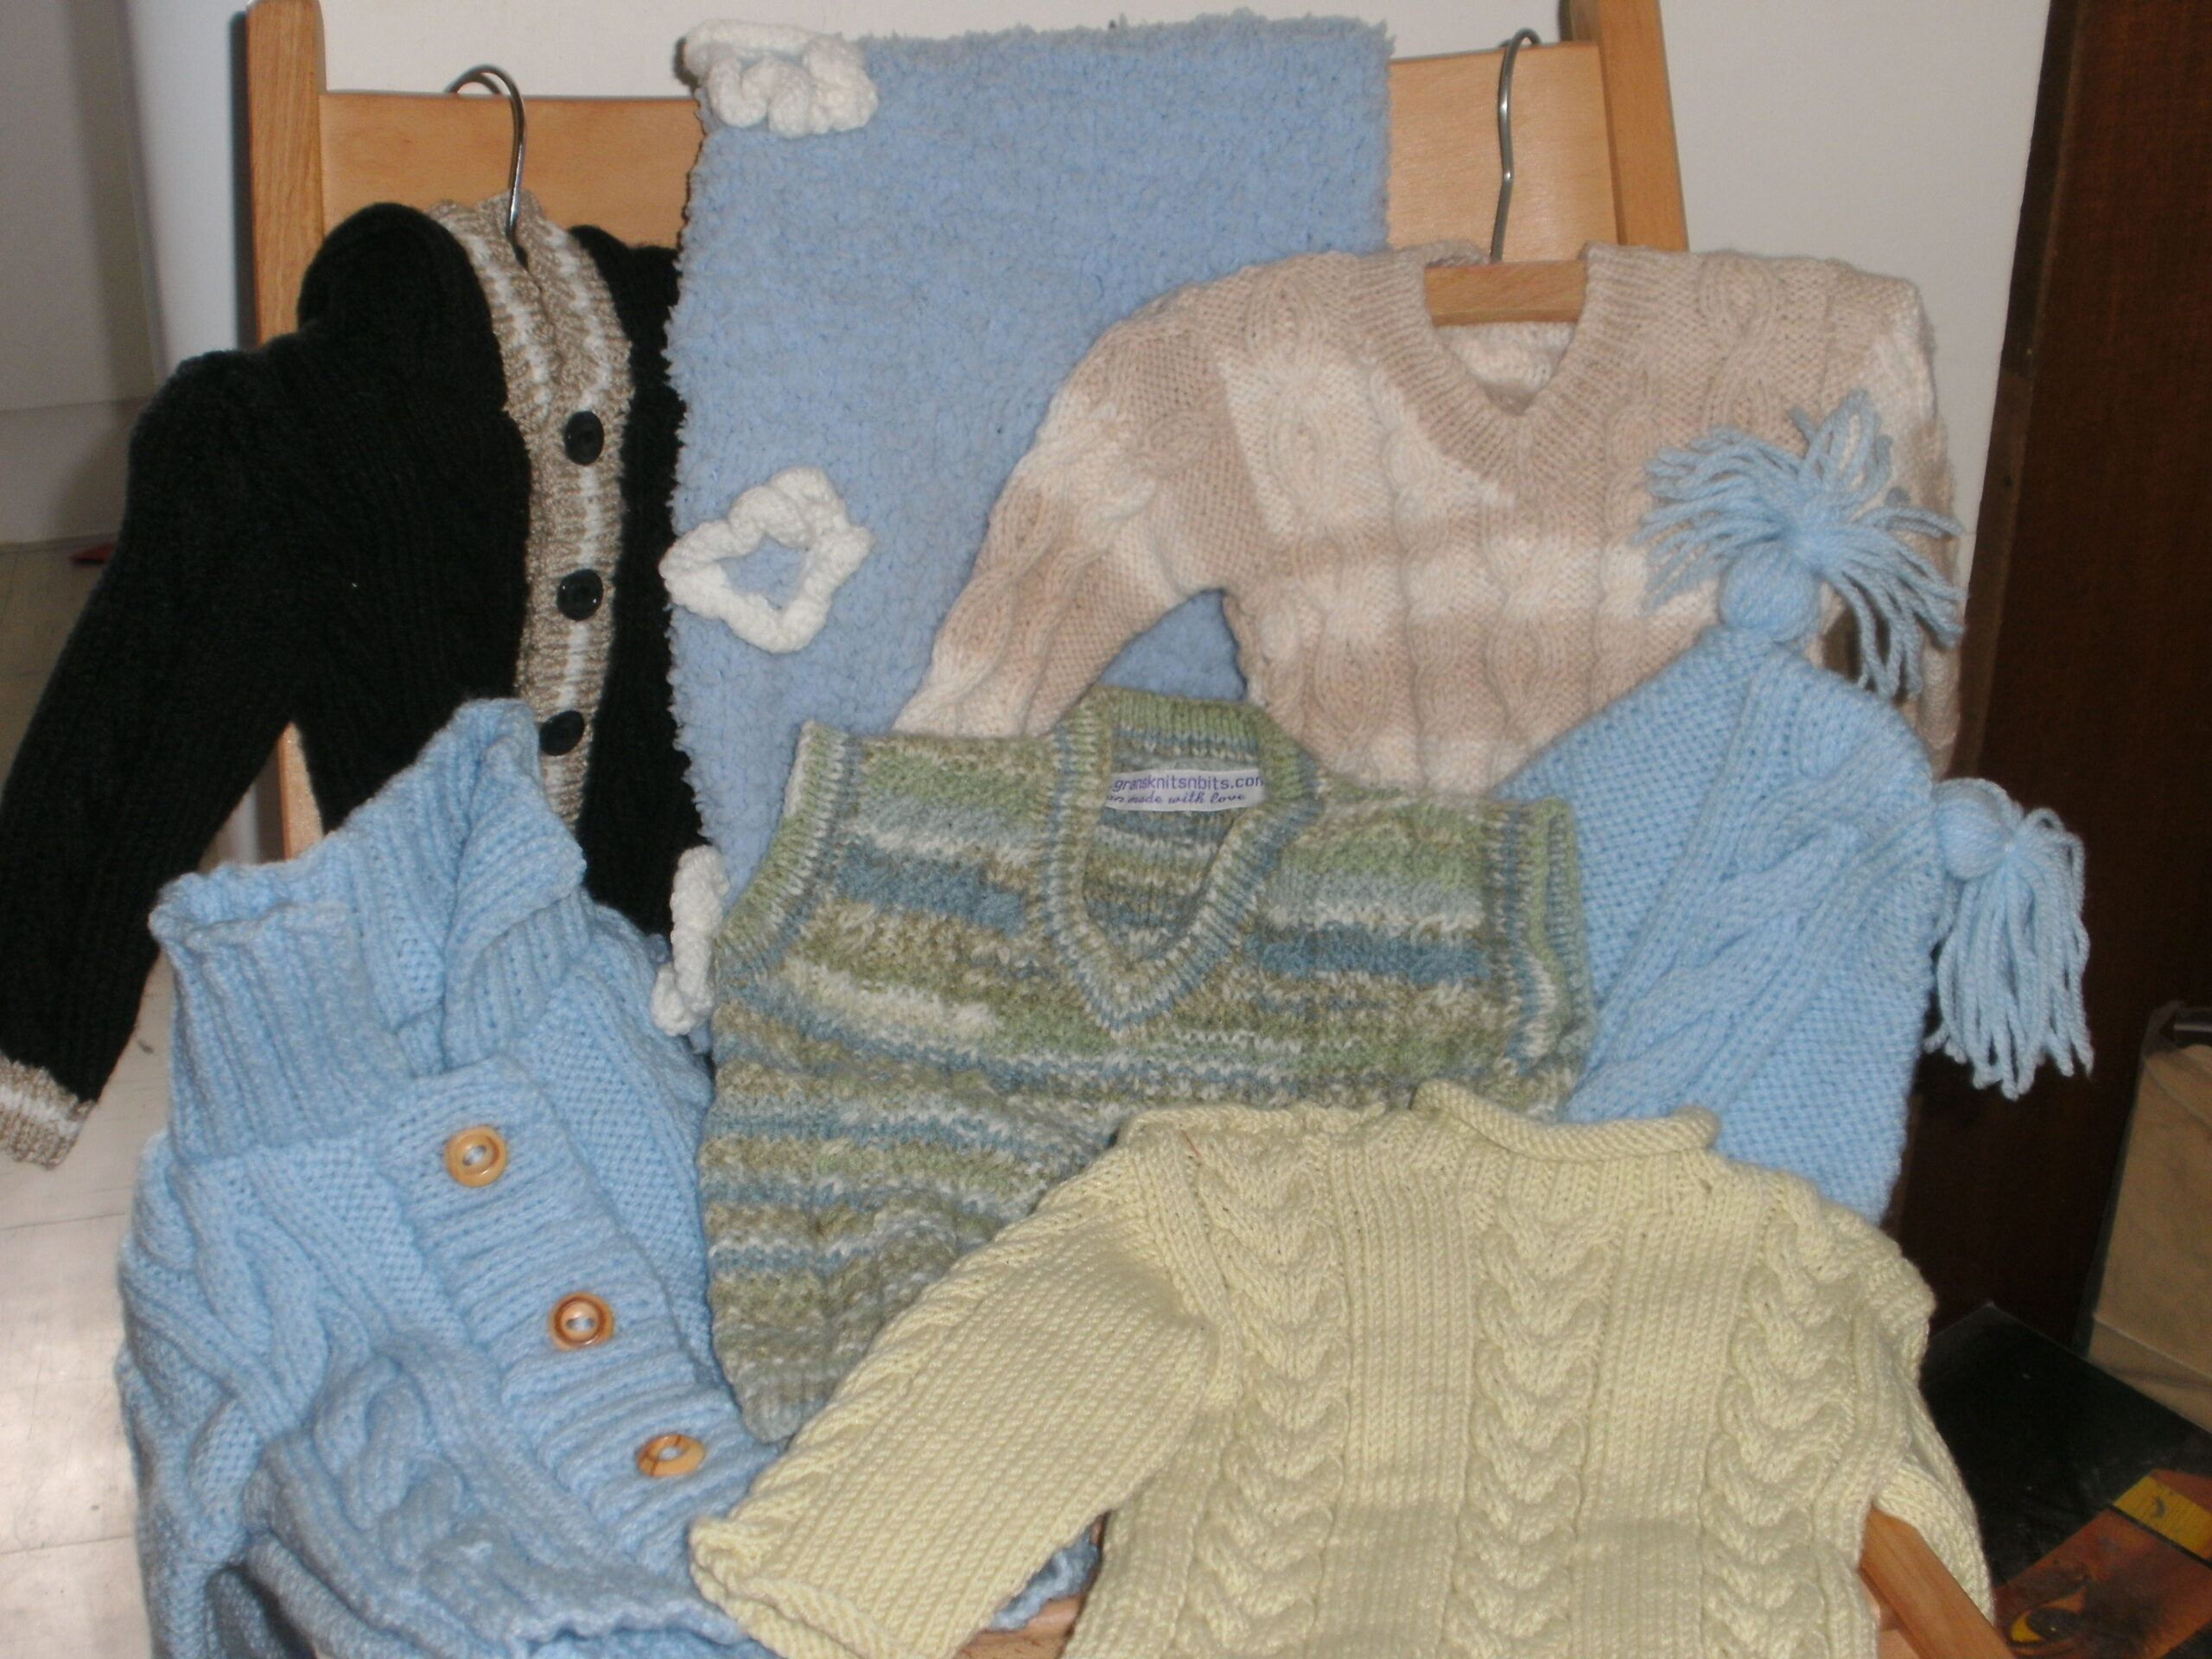 Clearance hand knitted baby items - Grans Knits 'n' Bits